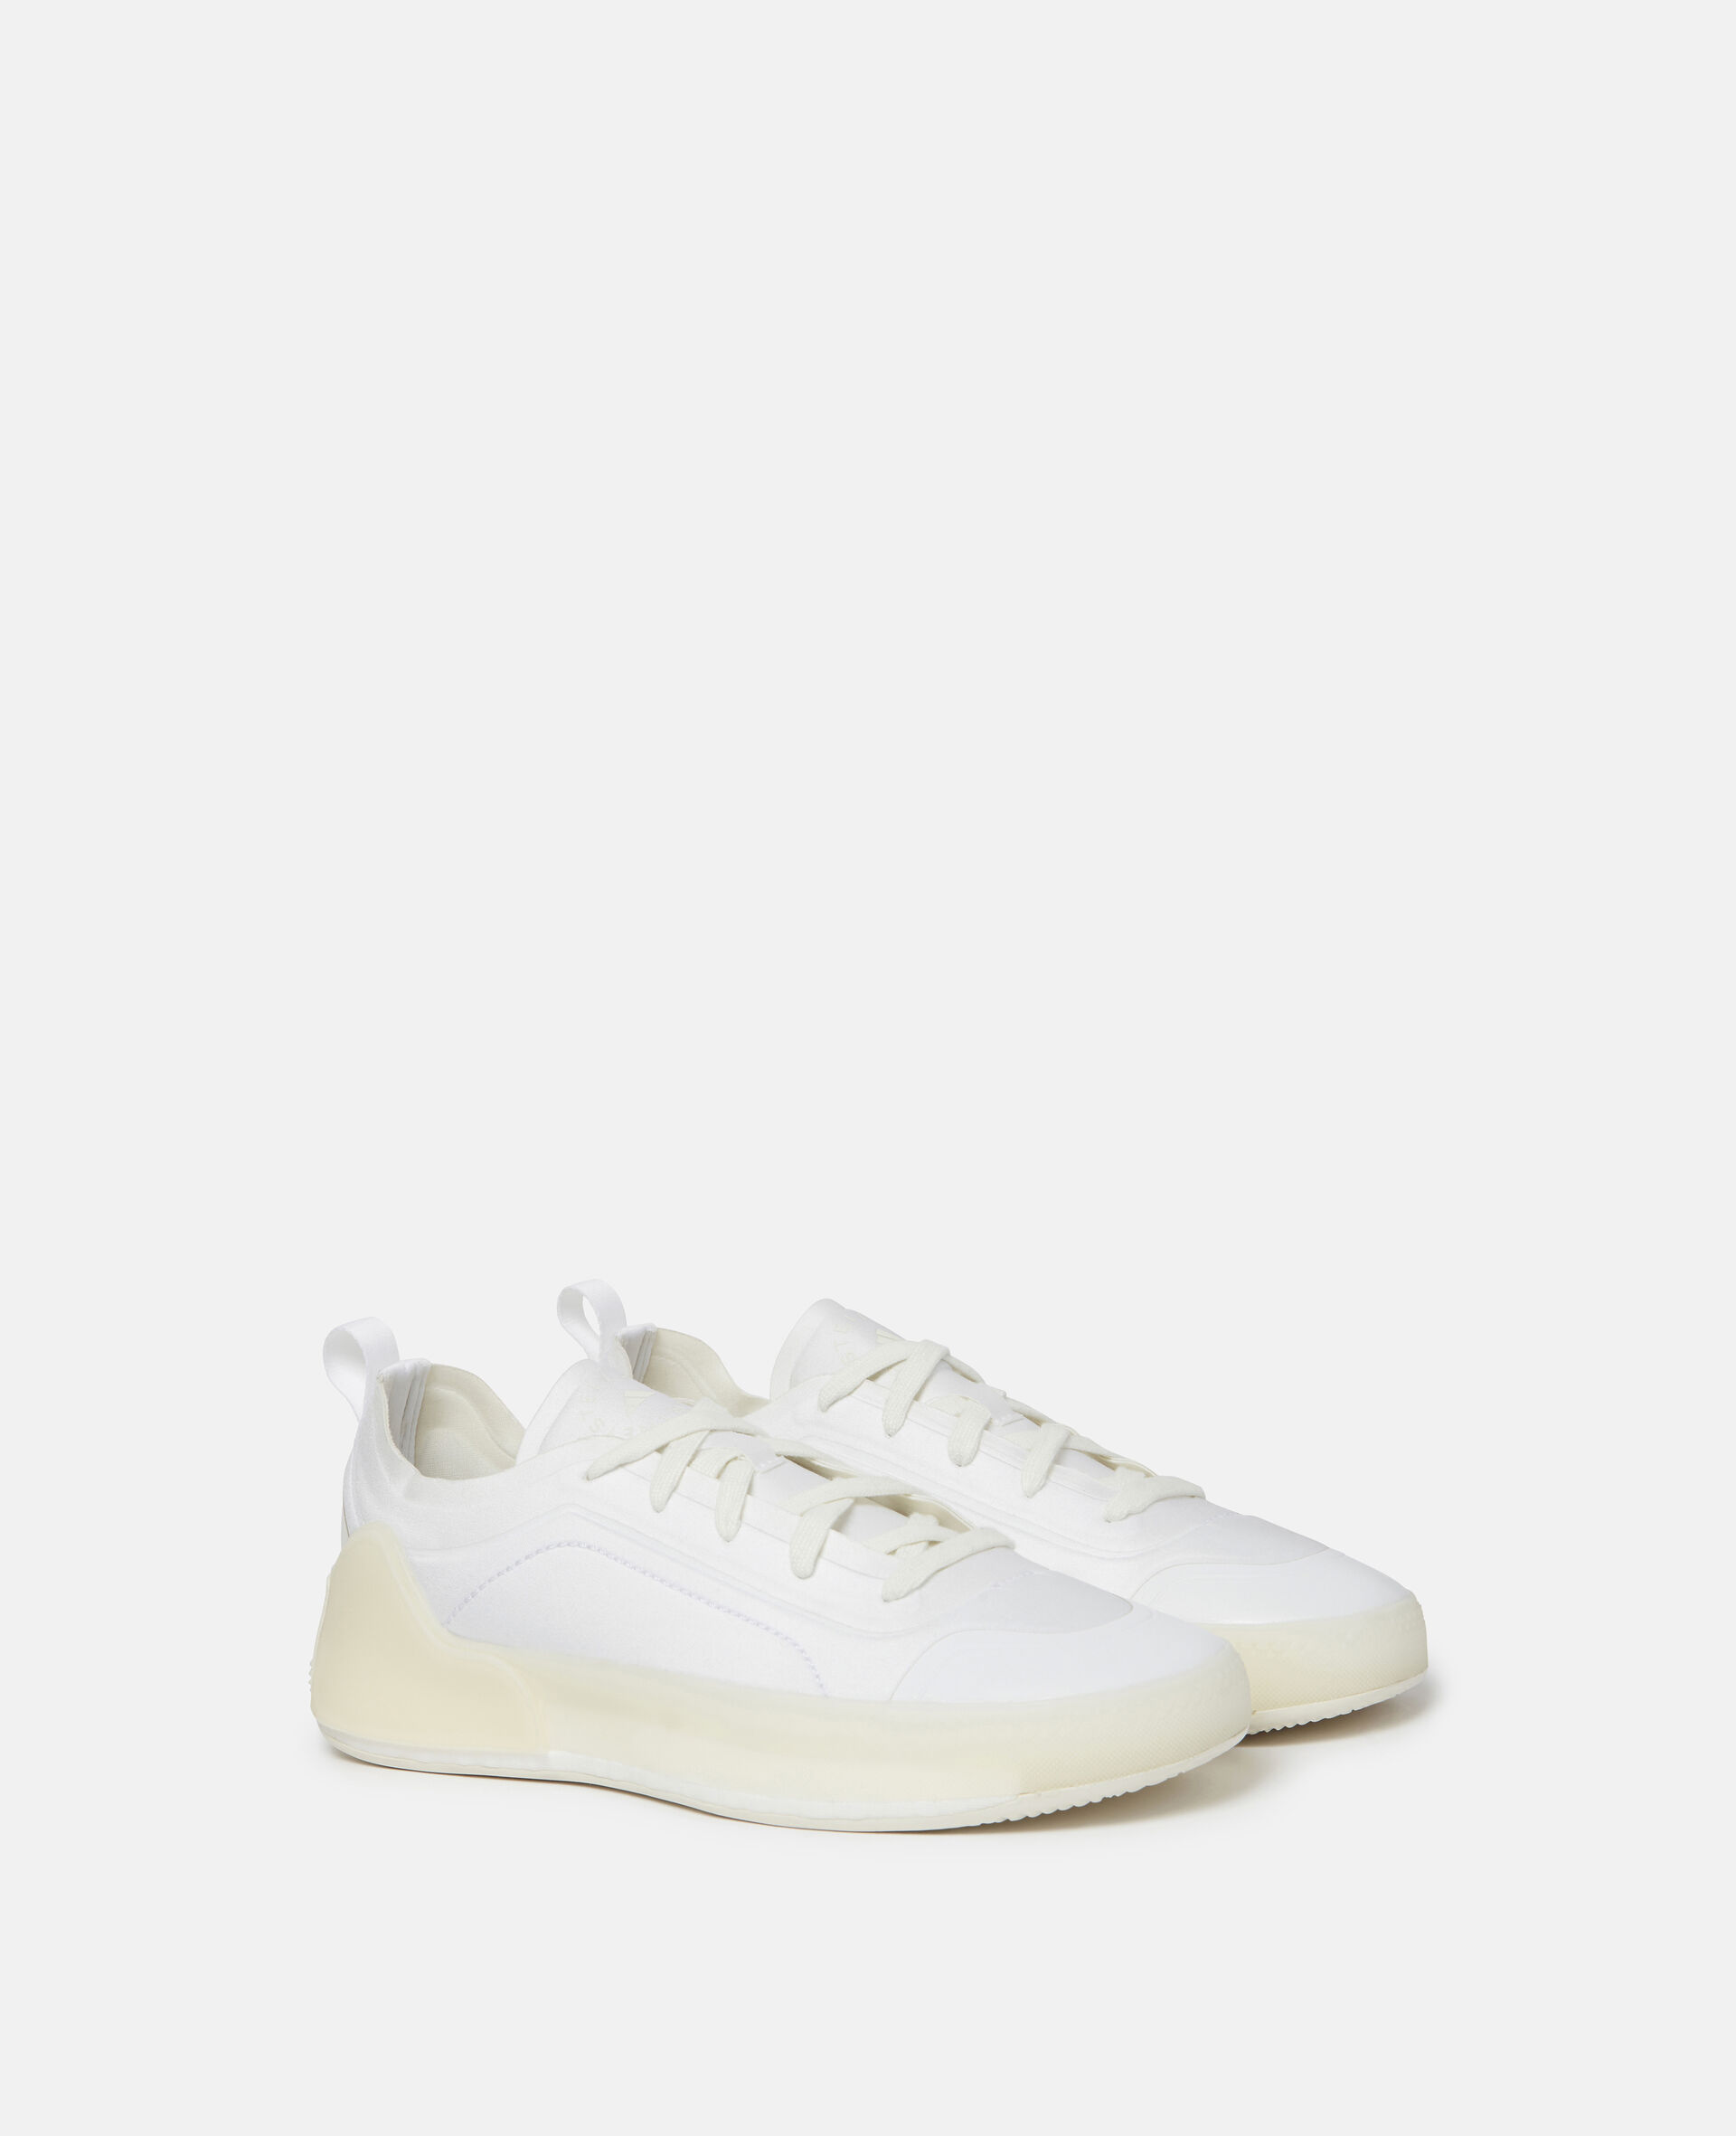 White Boost Treino Sneakers-White-large image number 1